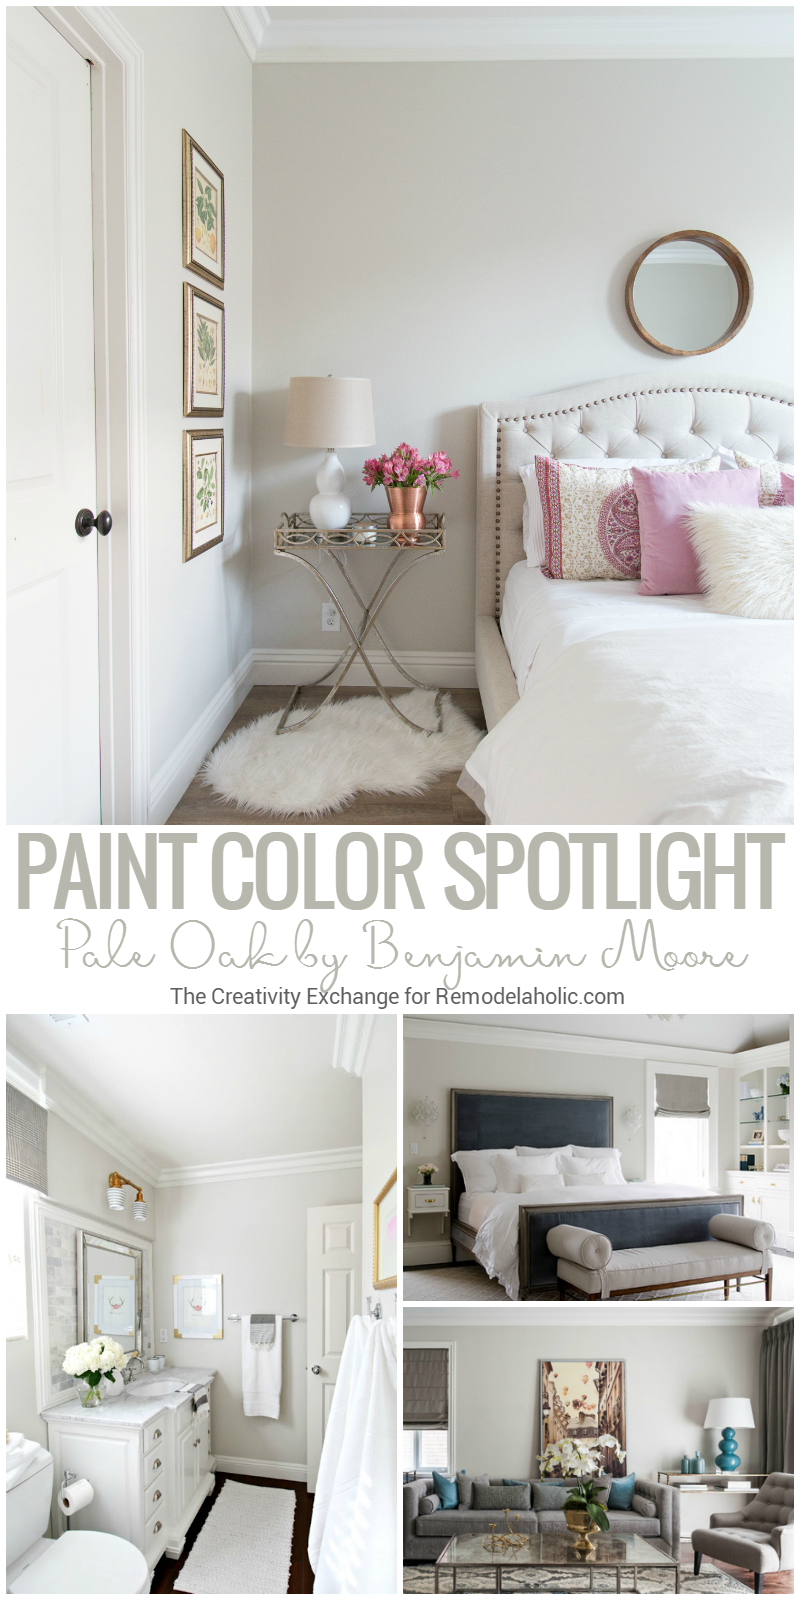 Pale Oak By Benjamin Moore is a balanced and versatile ...